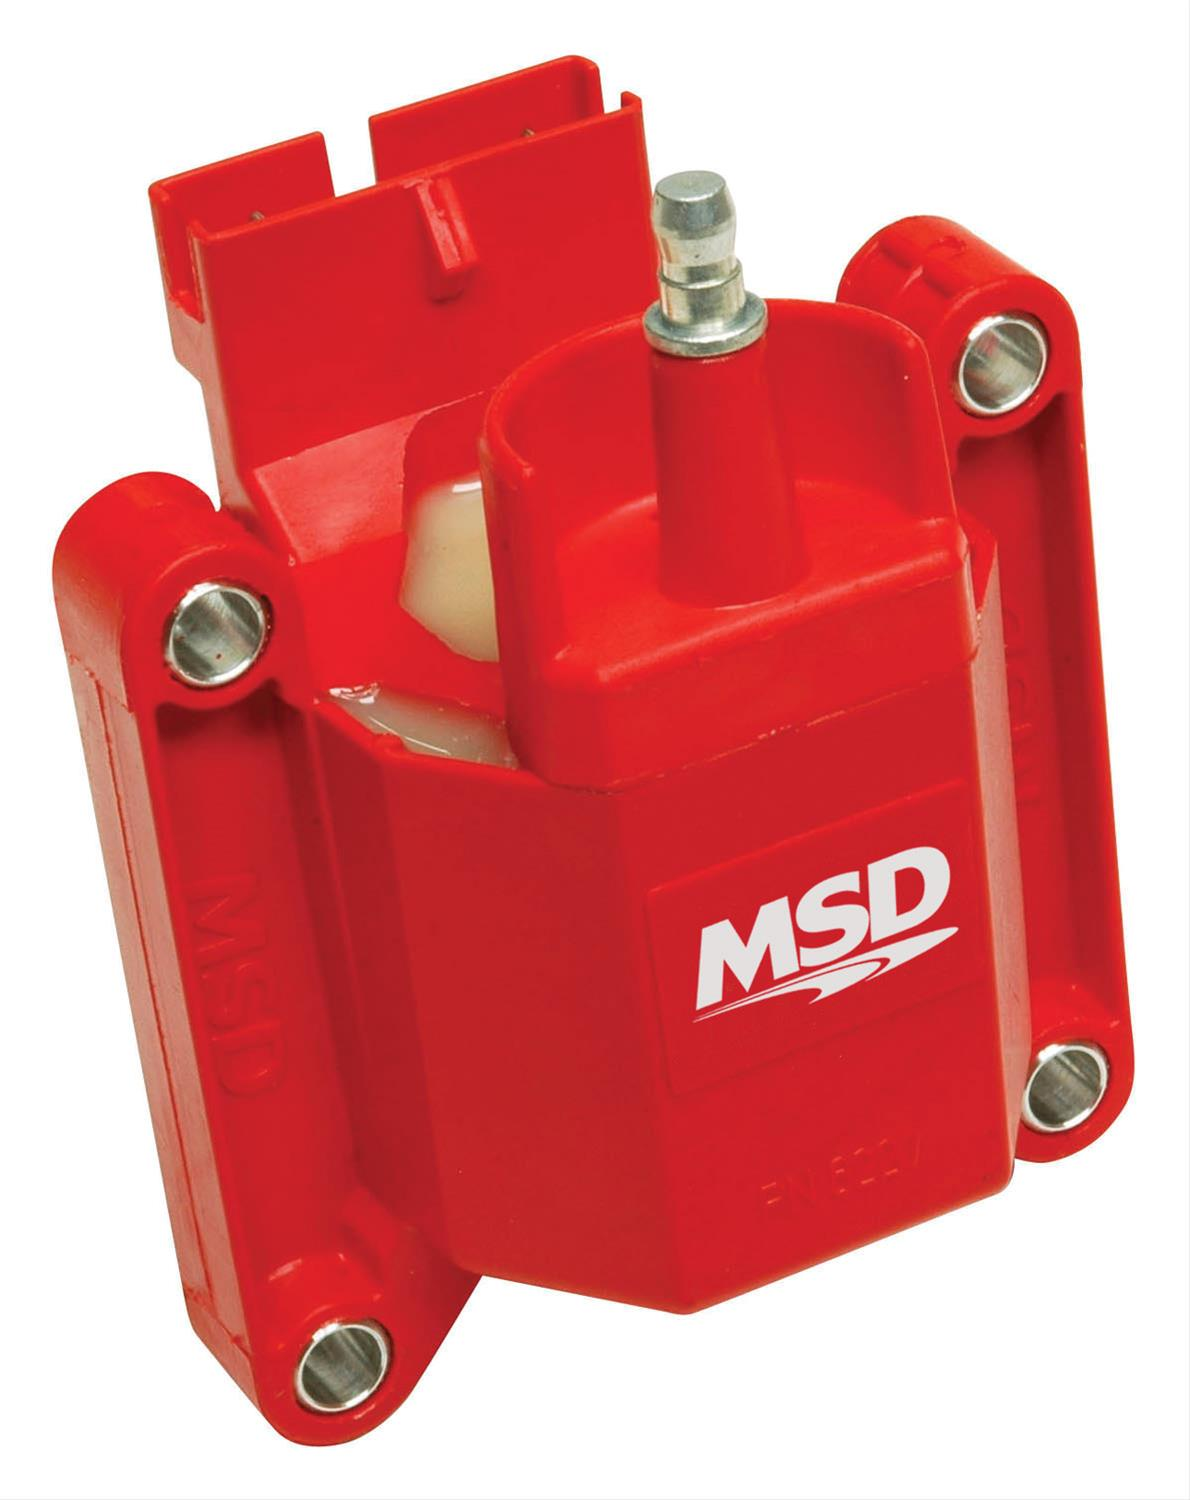 hight resolution of msd blaster tfi coils 8227 free shipping on orders over 99 at summit racing